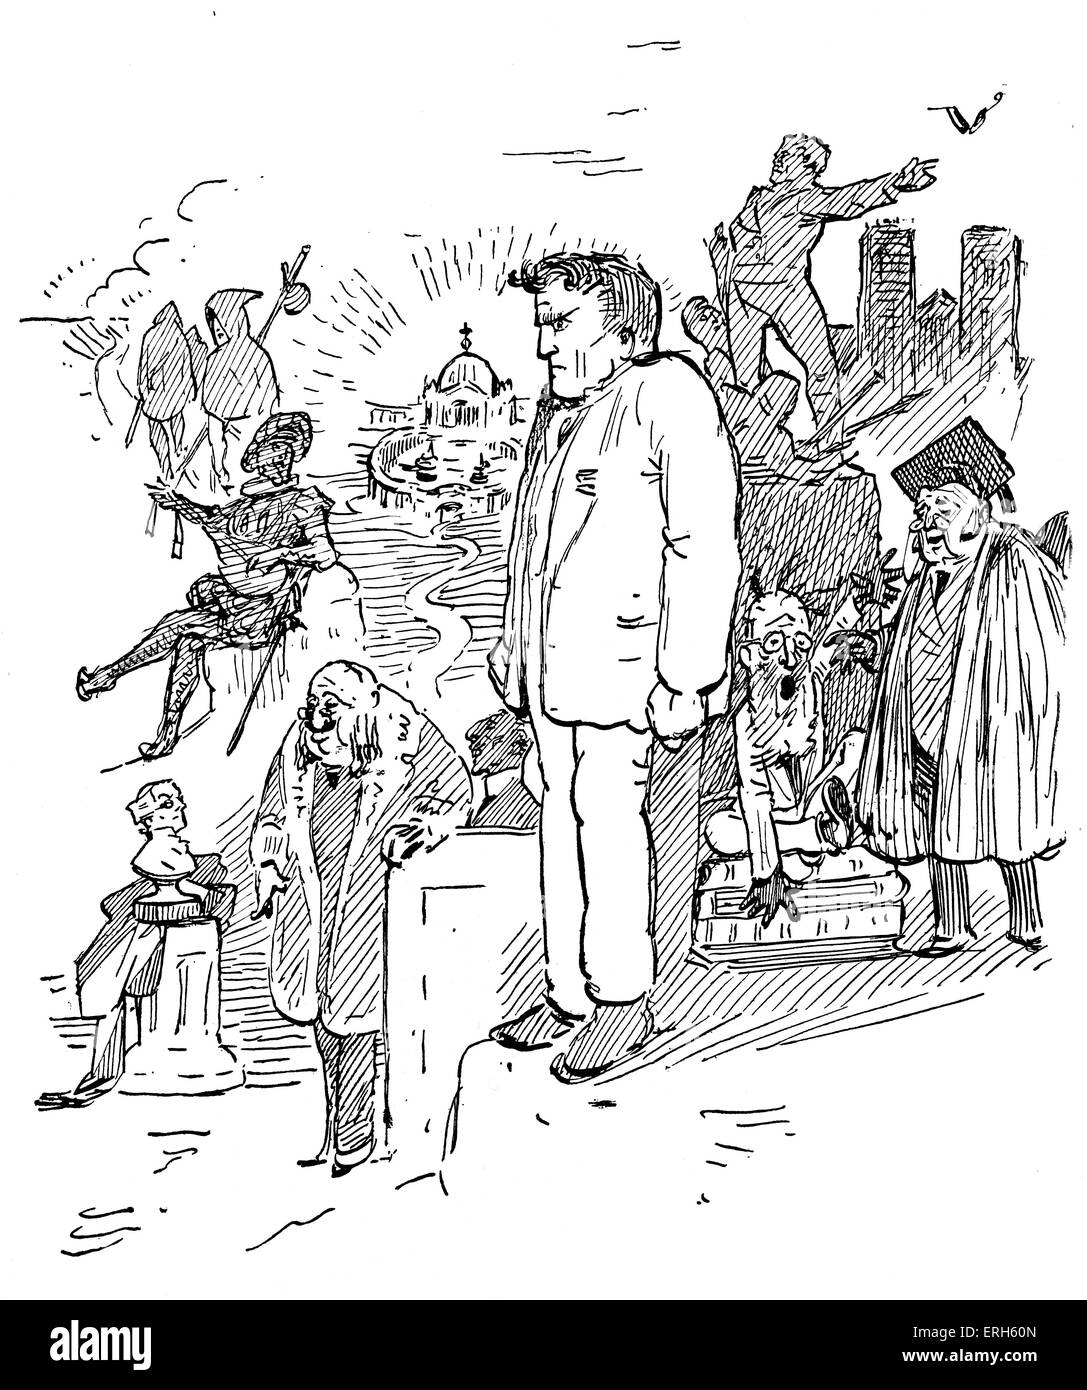 Hilaire Belloc by Gilbert Keith Chesterton. The accompanying verse reads 'Mr Hilaire Belloc / Is a case for - Stock Image